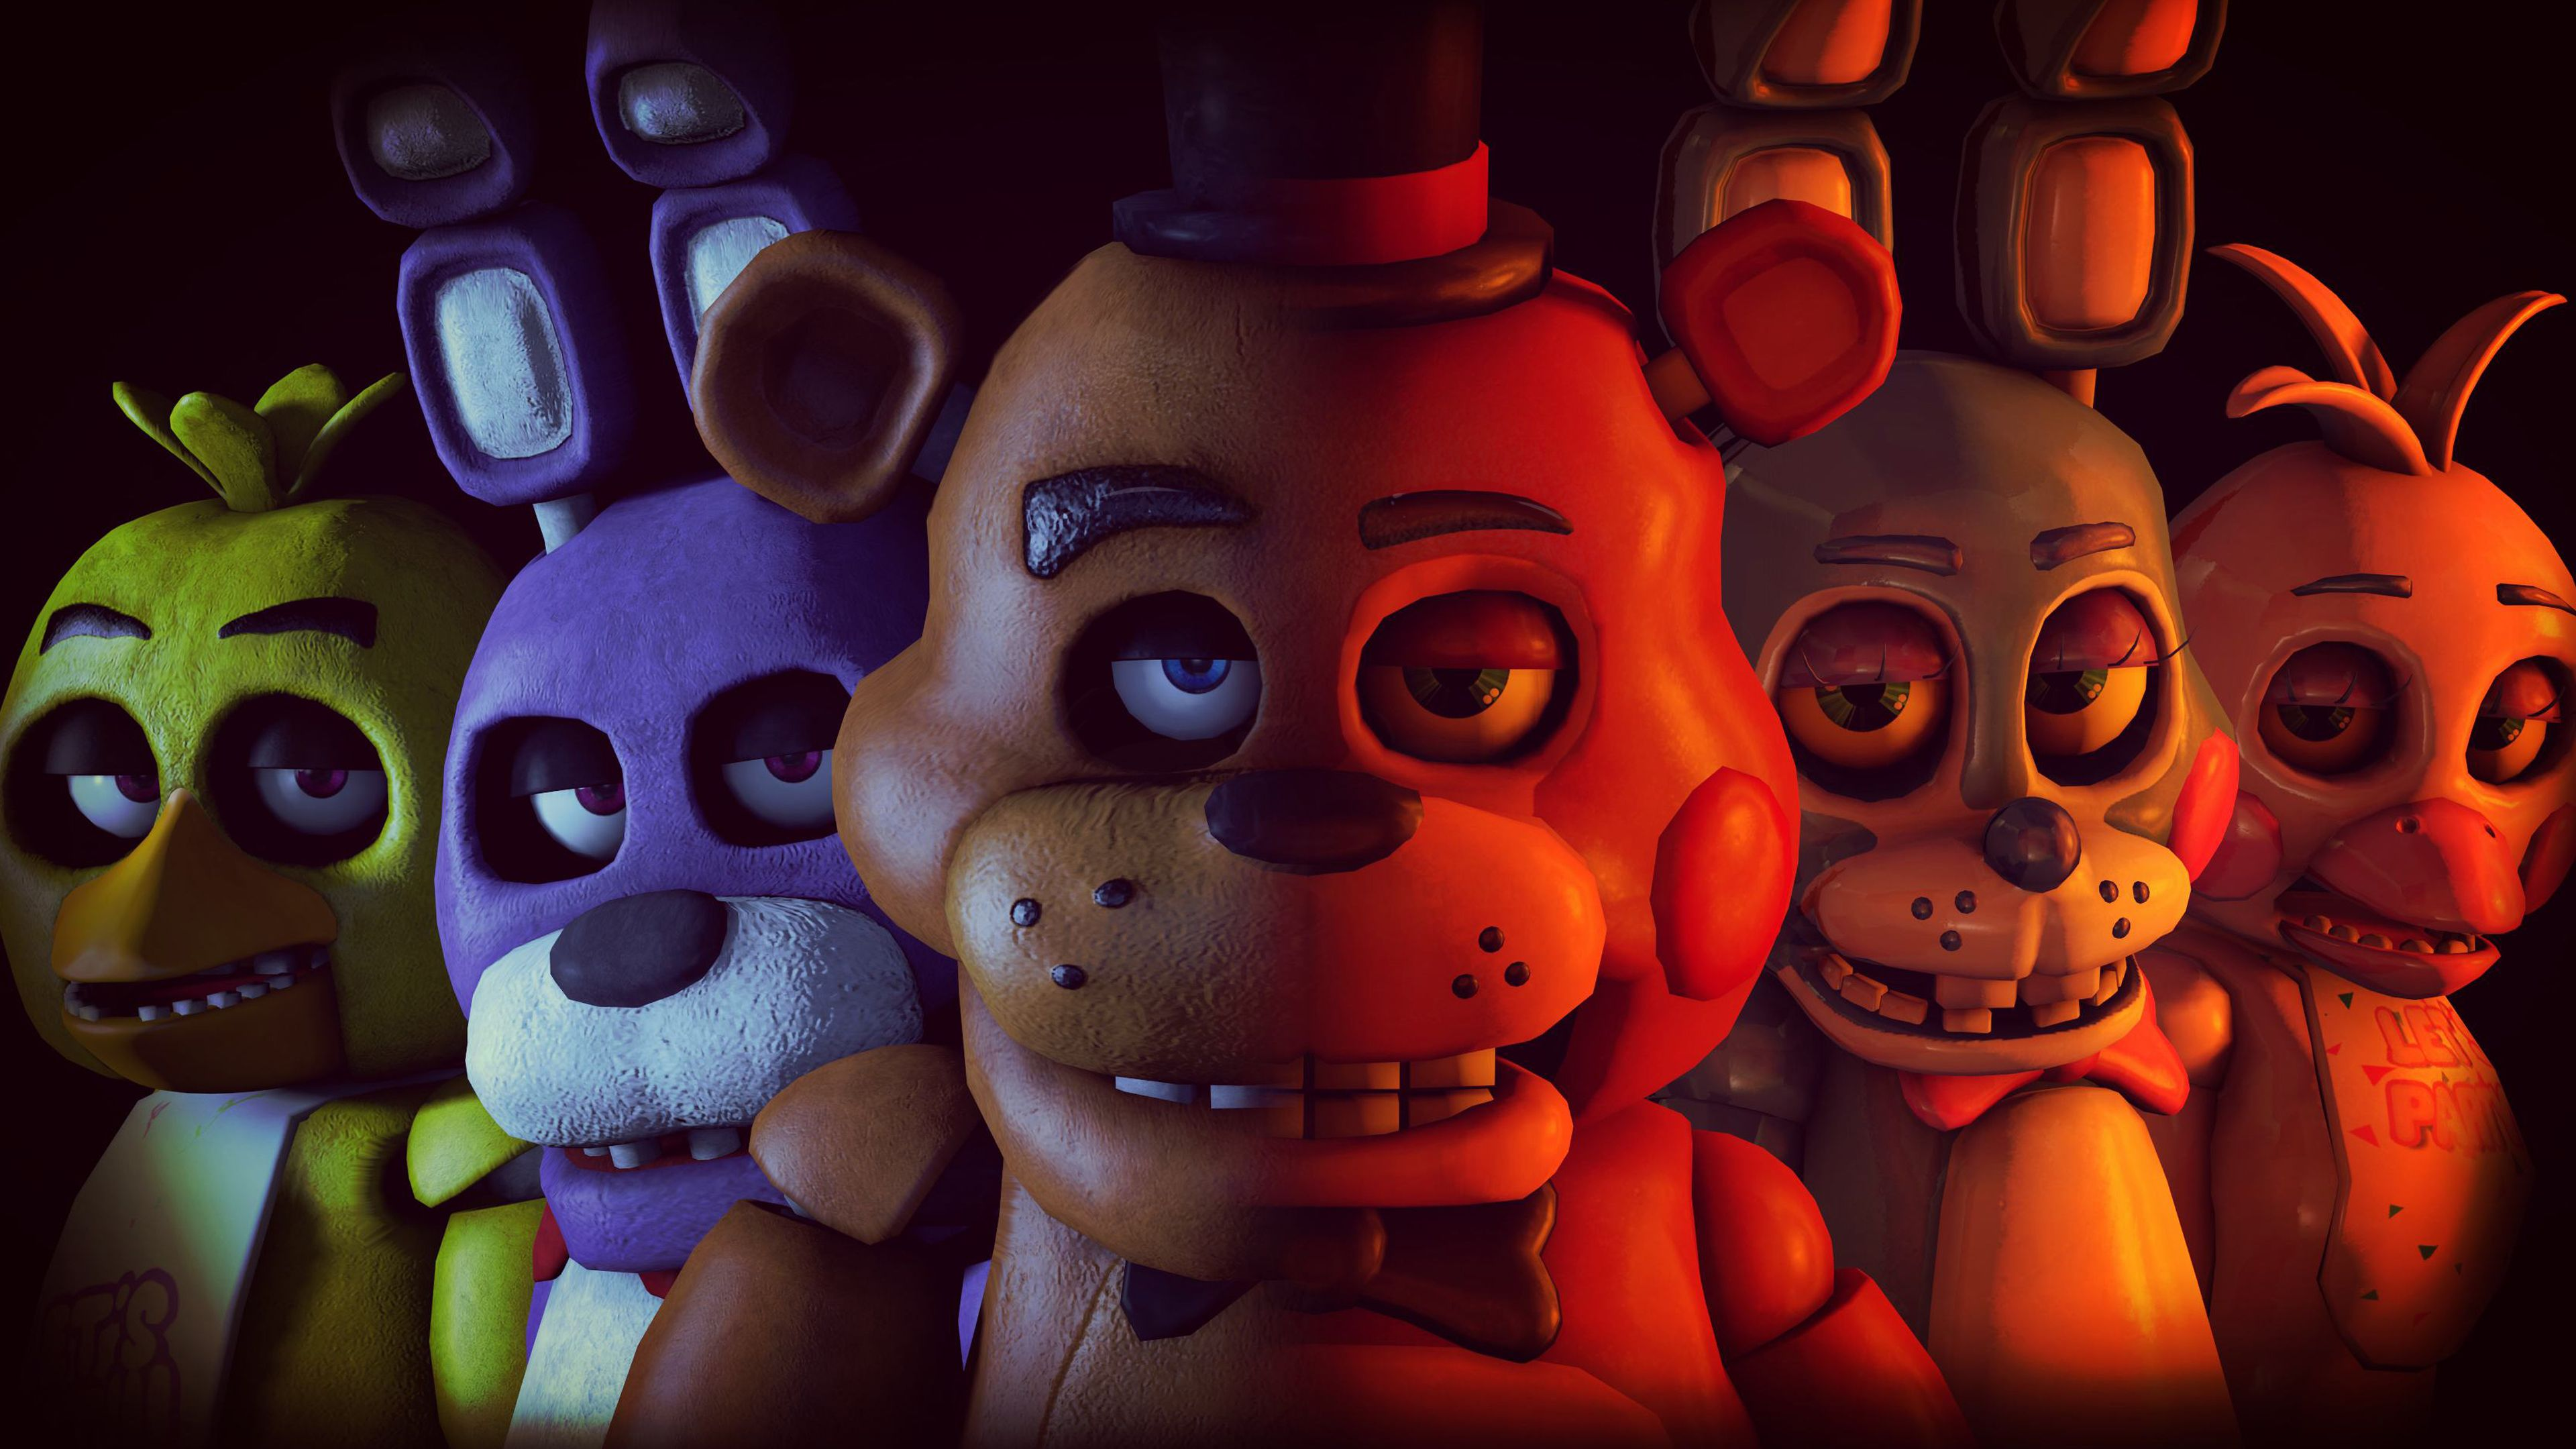 Five Nights At Freddy S Desktop Wallpapers Top Free Five Nights